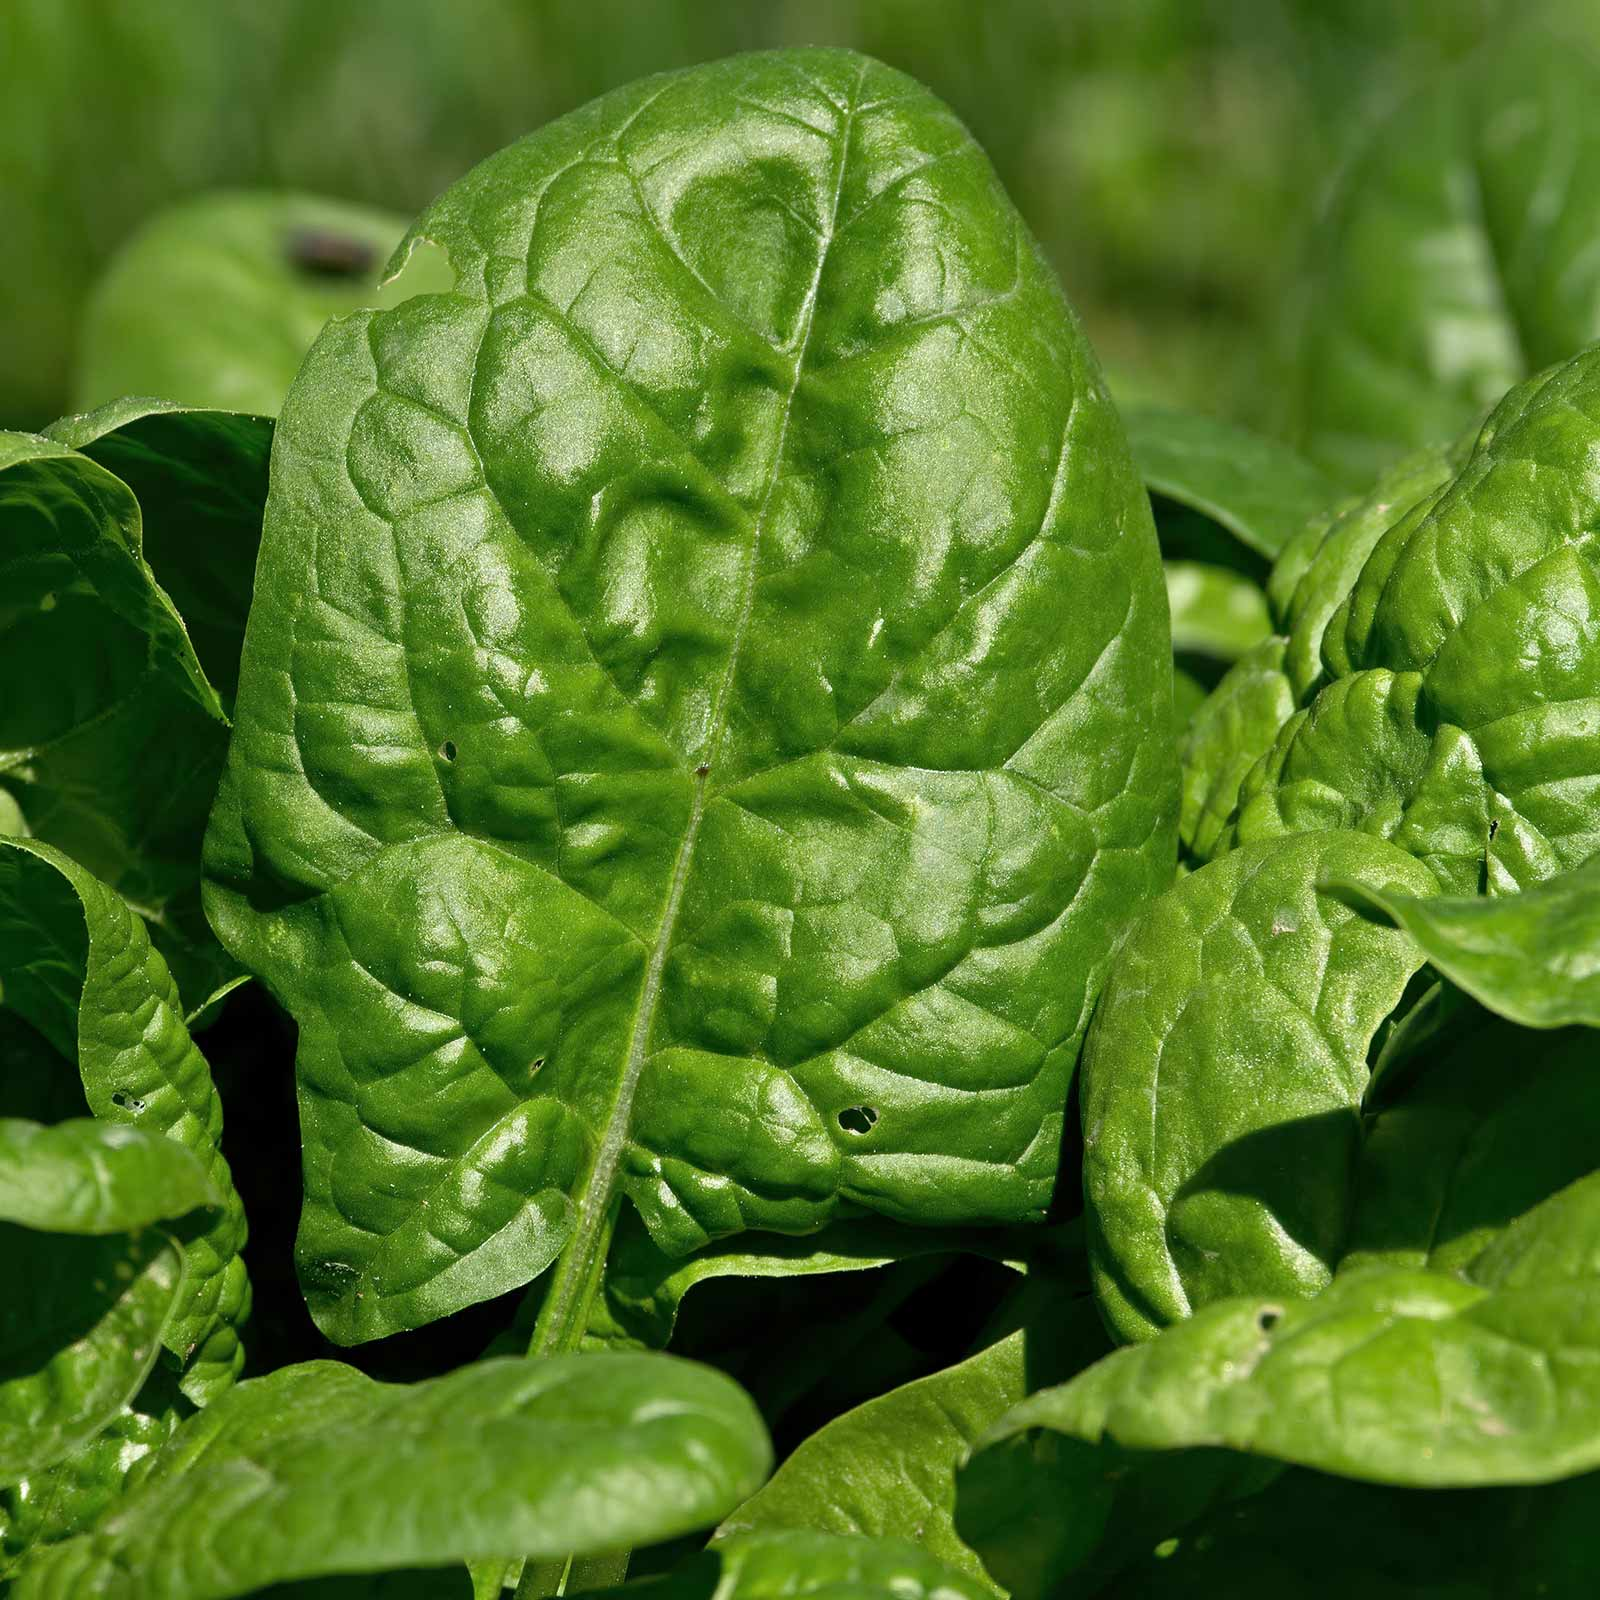 Giant Nobel Spinach Seeds - 5 Lb Bulk Seed - Heirloom, Non-GMO Gardening Seed - Slow Bolt Garden Spinach - Microgreens Seed